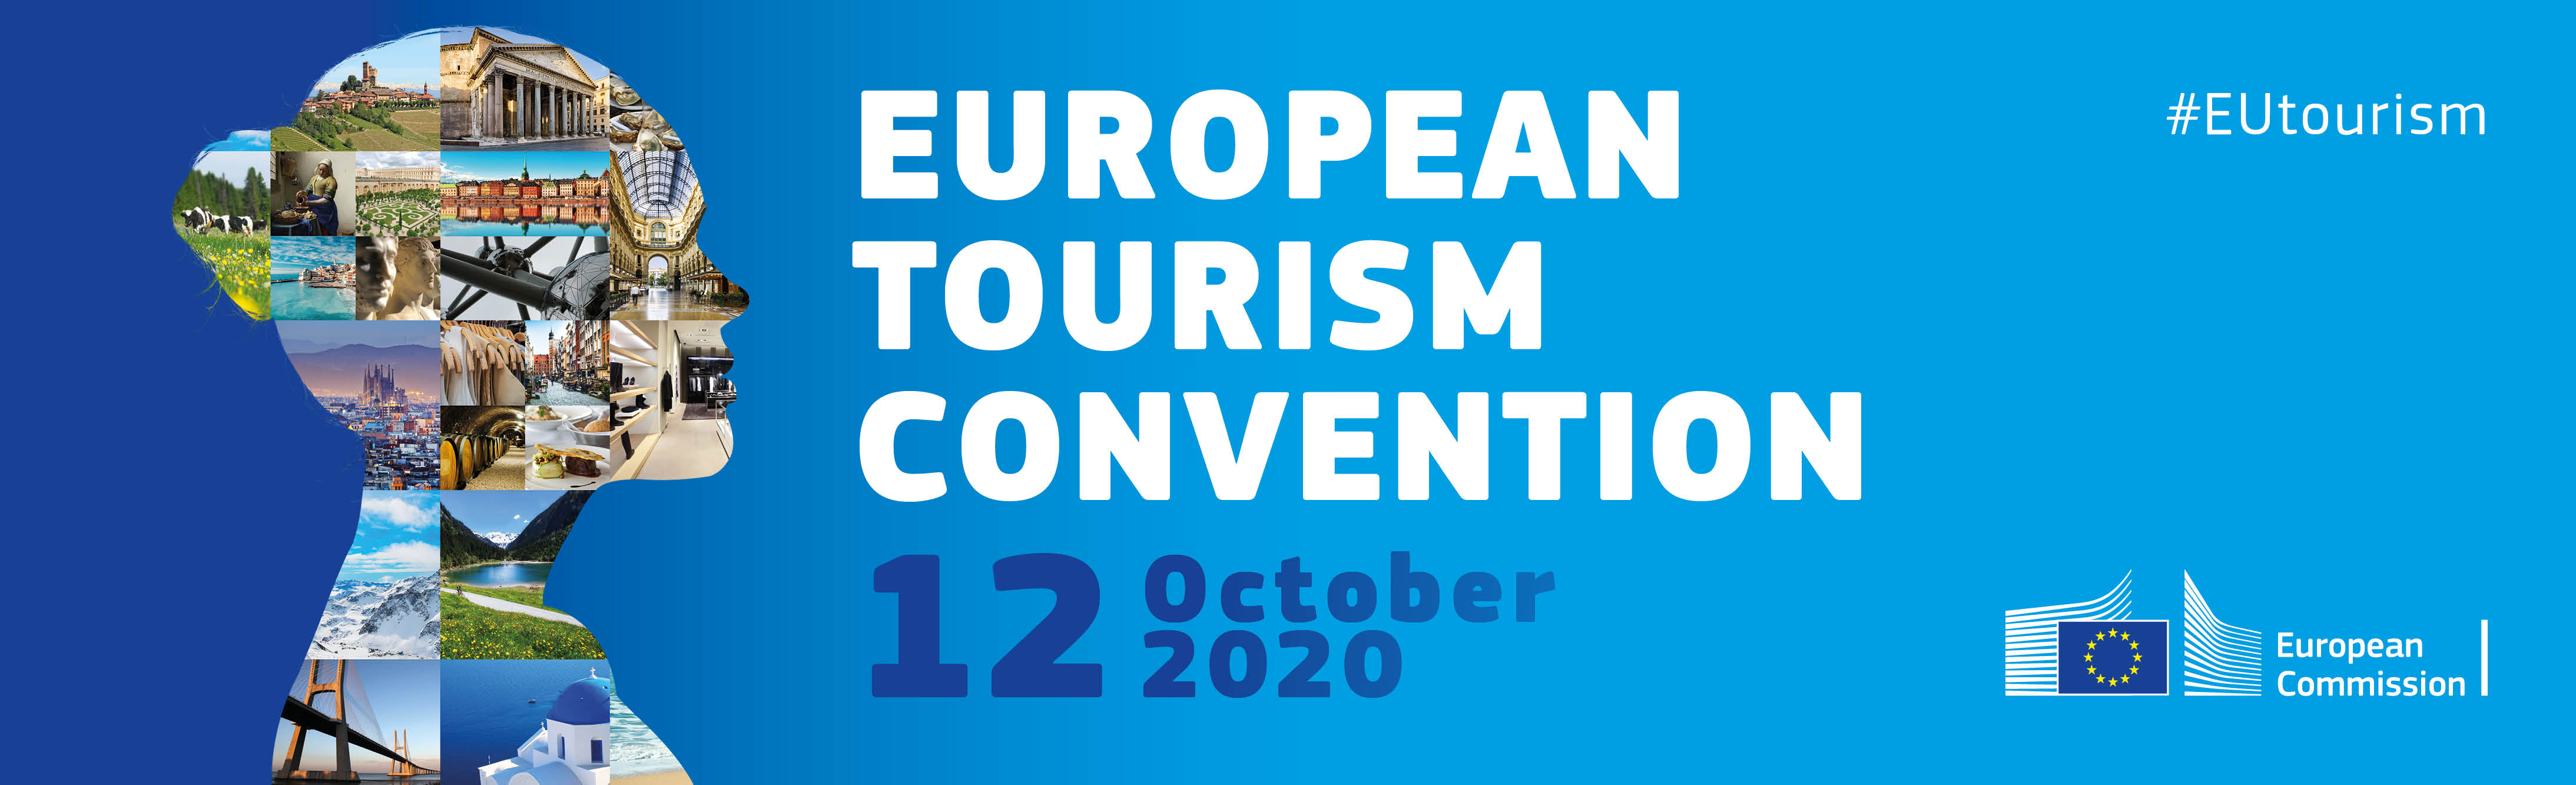 noti EuropenToruismConvention